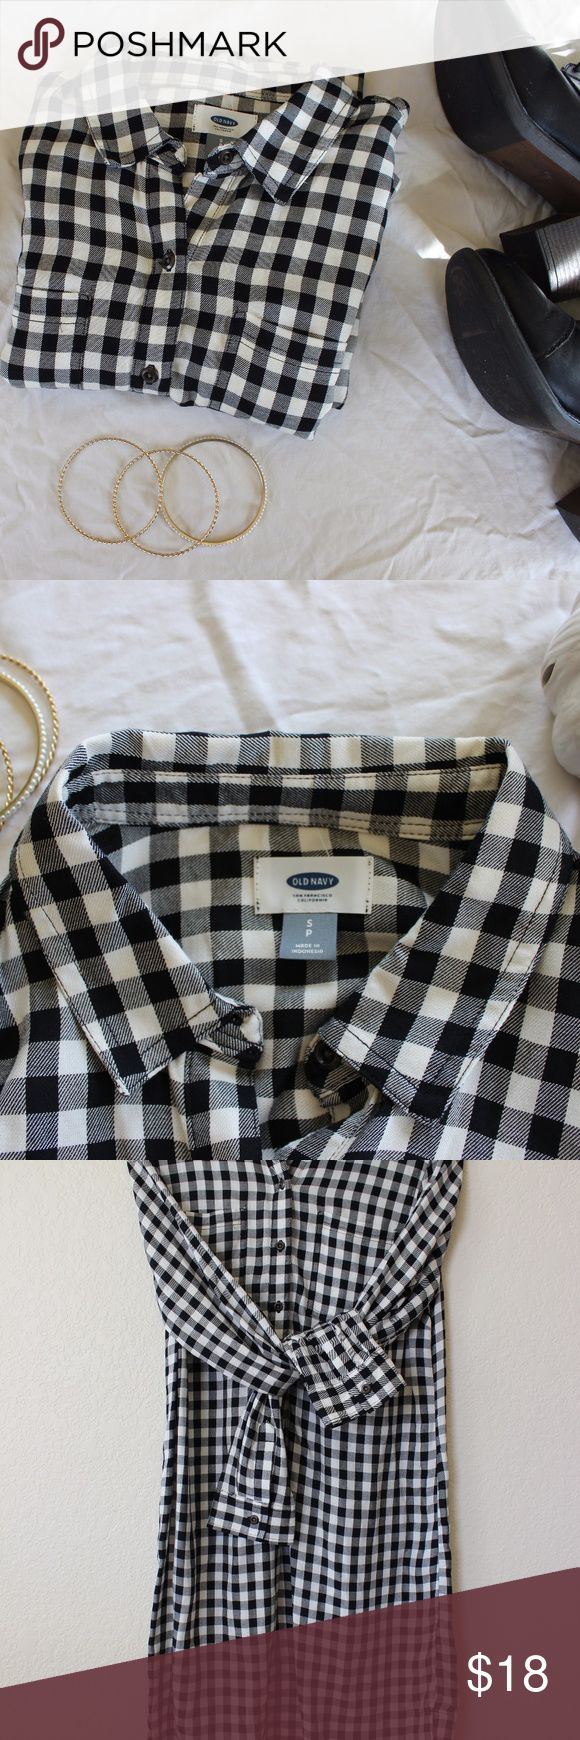 Old Navy Gingham Shirt Dress NWOT Beautiful gingham checked black and white shirt dress from Old Navy! Would look perfect for Autumn/Fall and Winter. With split side details. This dress is brand new w/o tags!  Hits at knee. Old Navy Dresses Midi